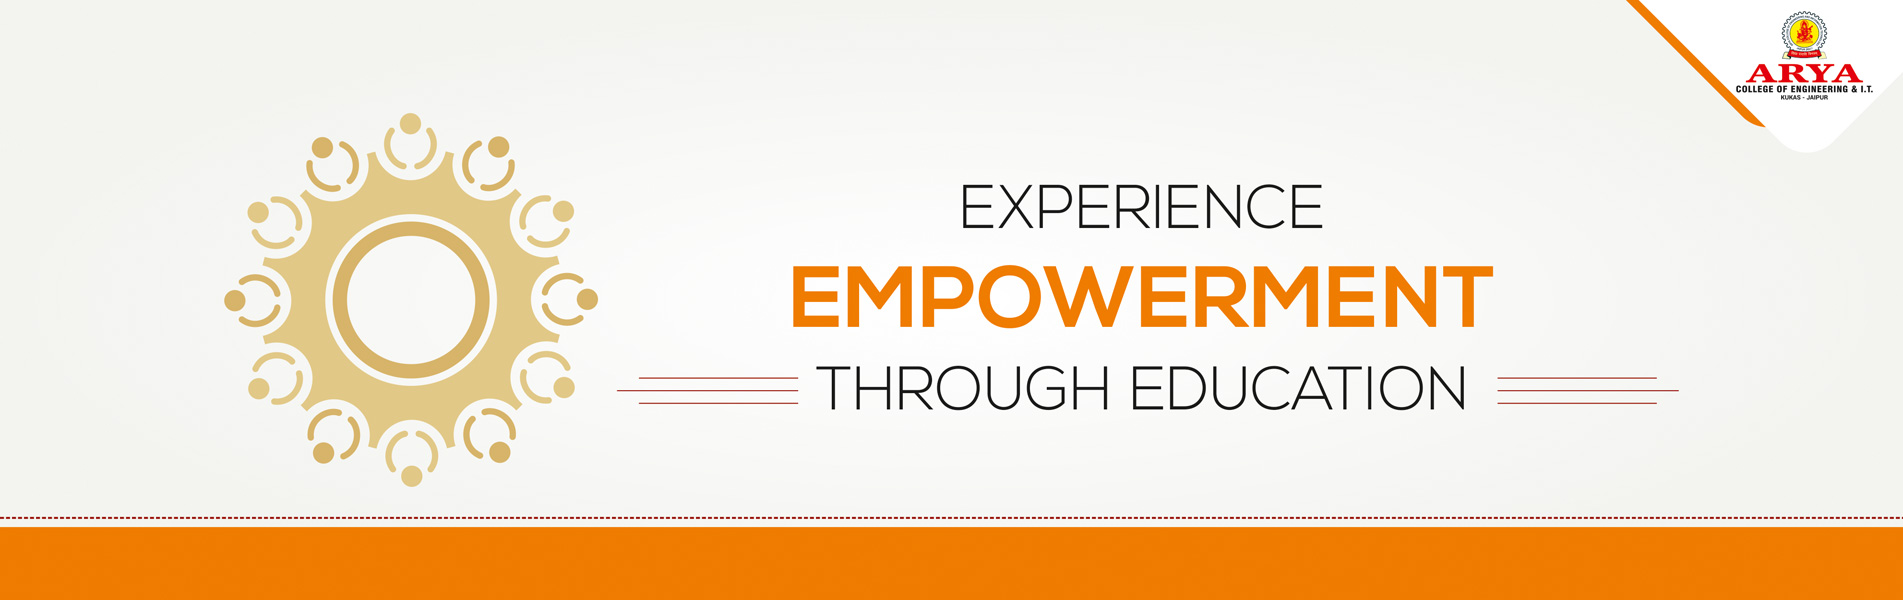 Experience-Empowerment-Through-Education